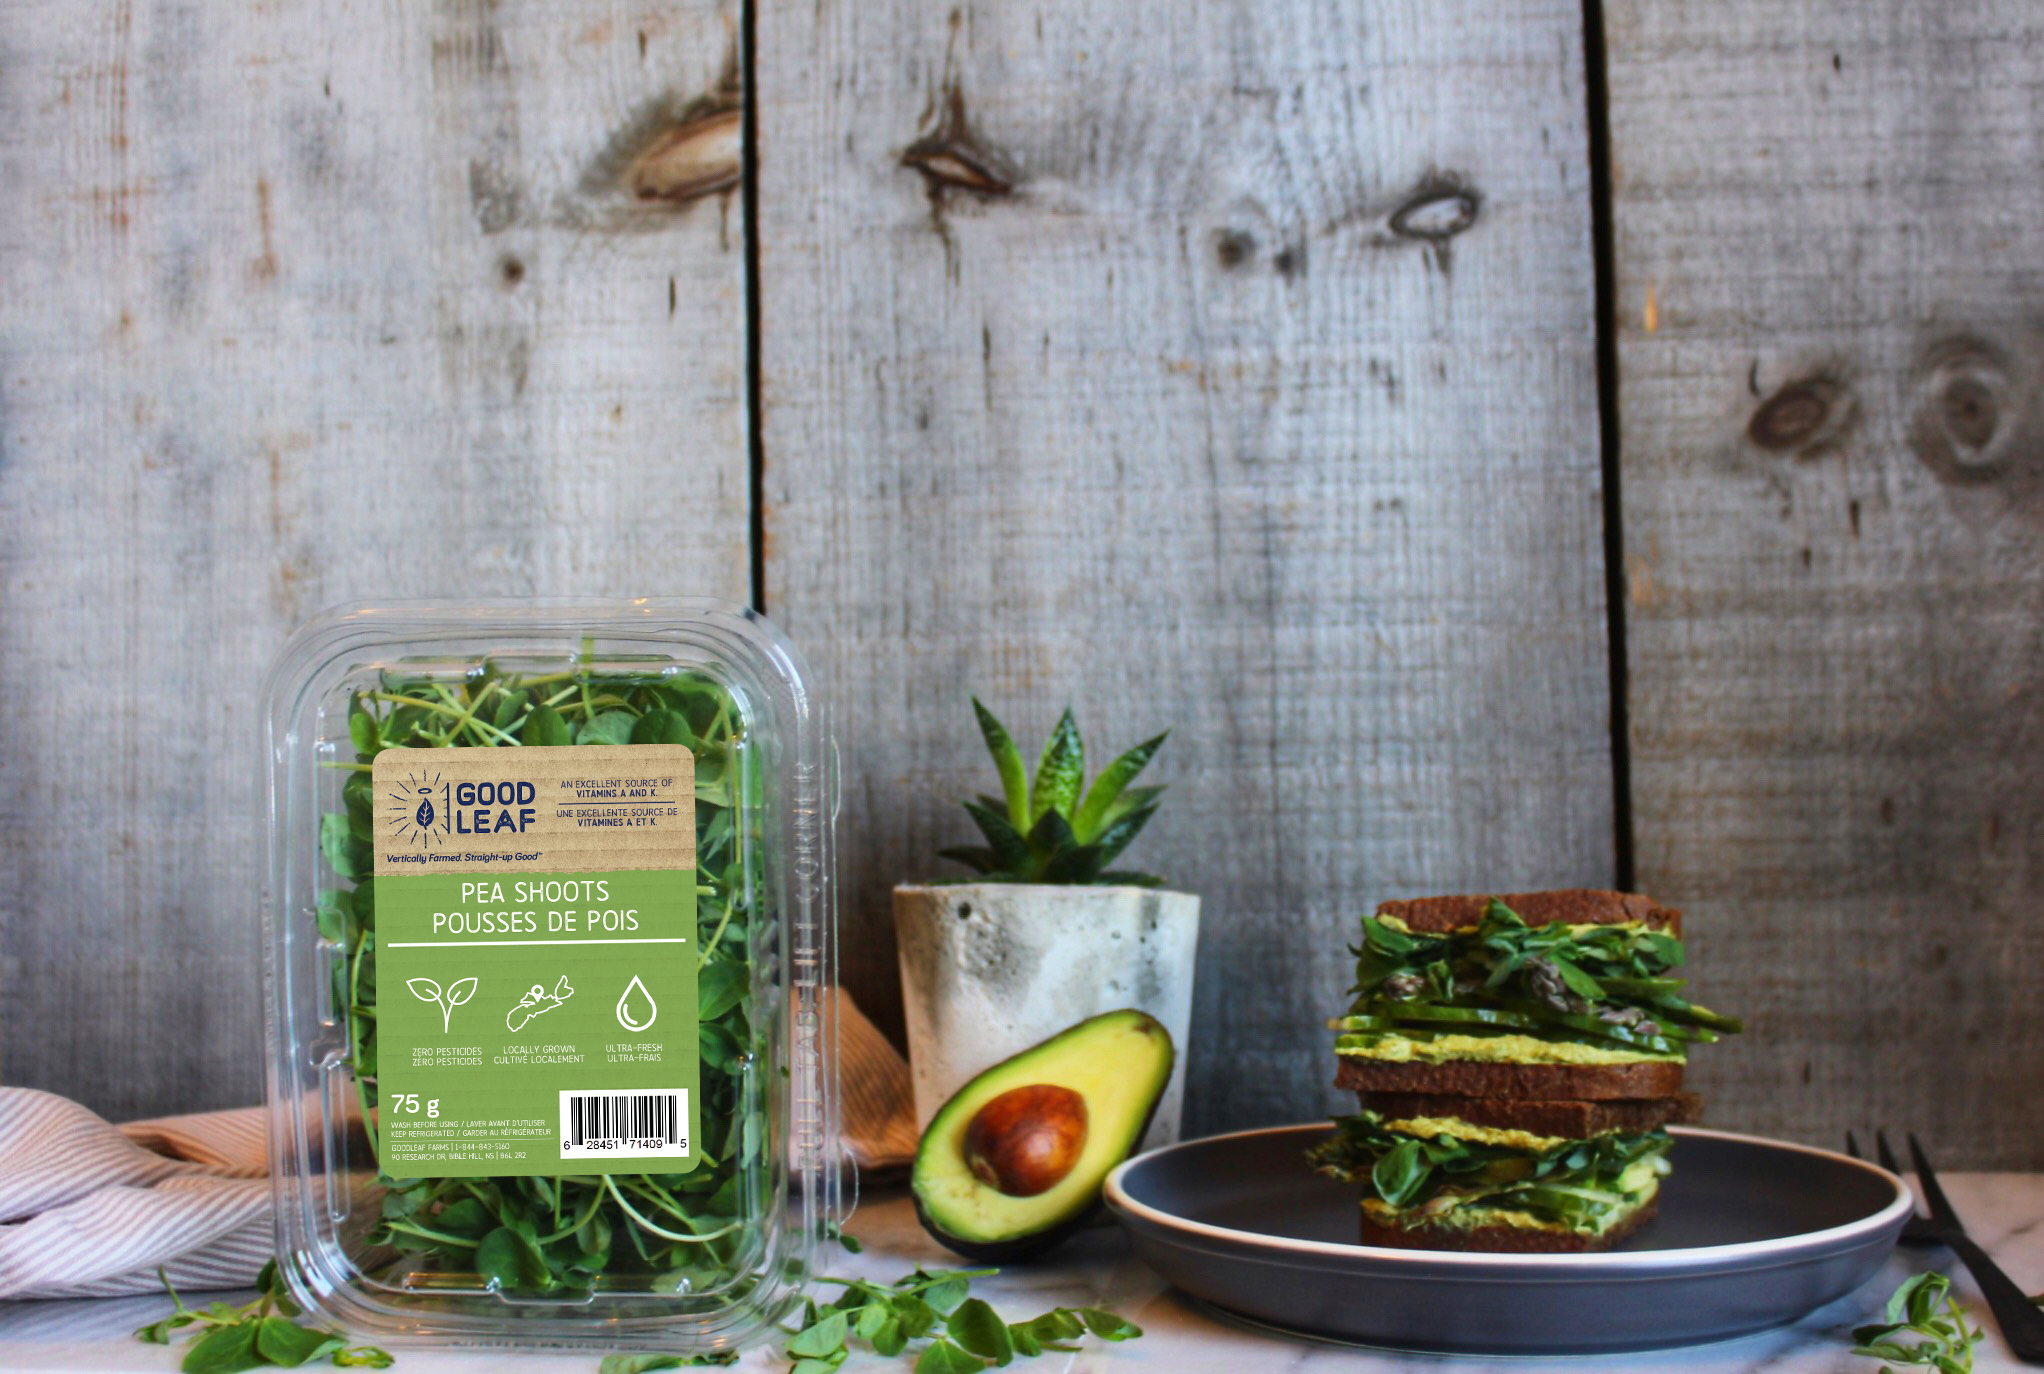 Product-Pea Shoots - web.jpg